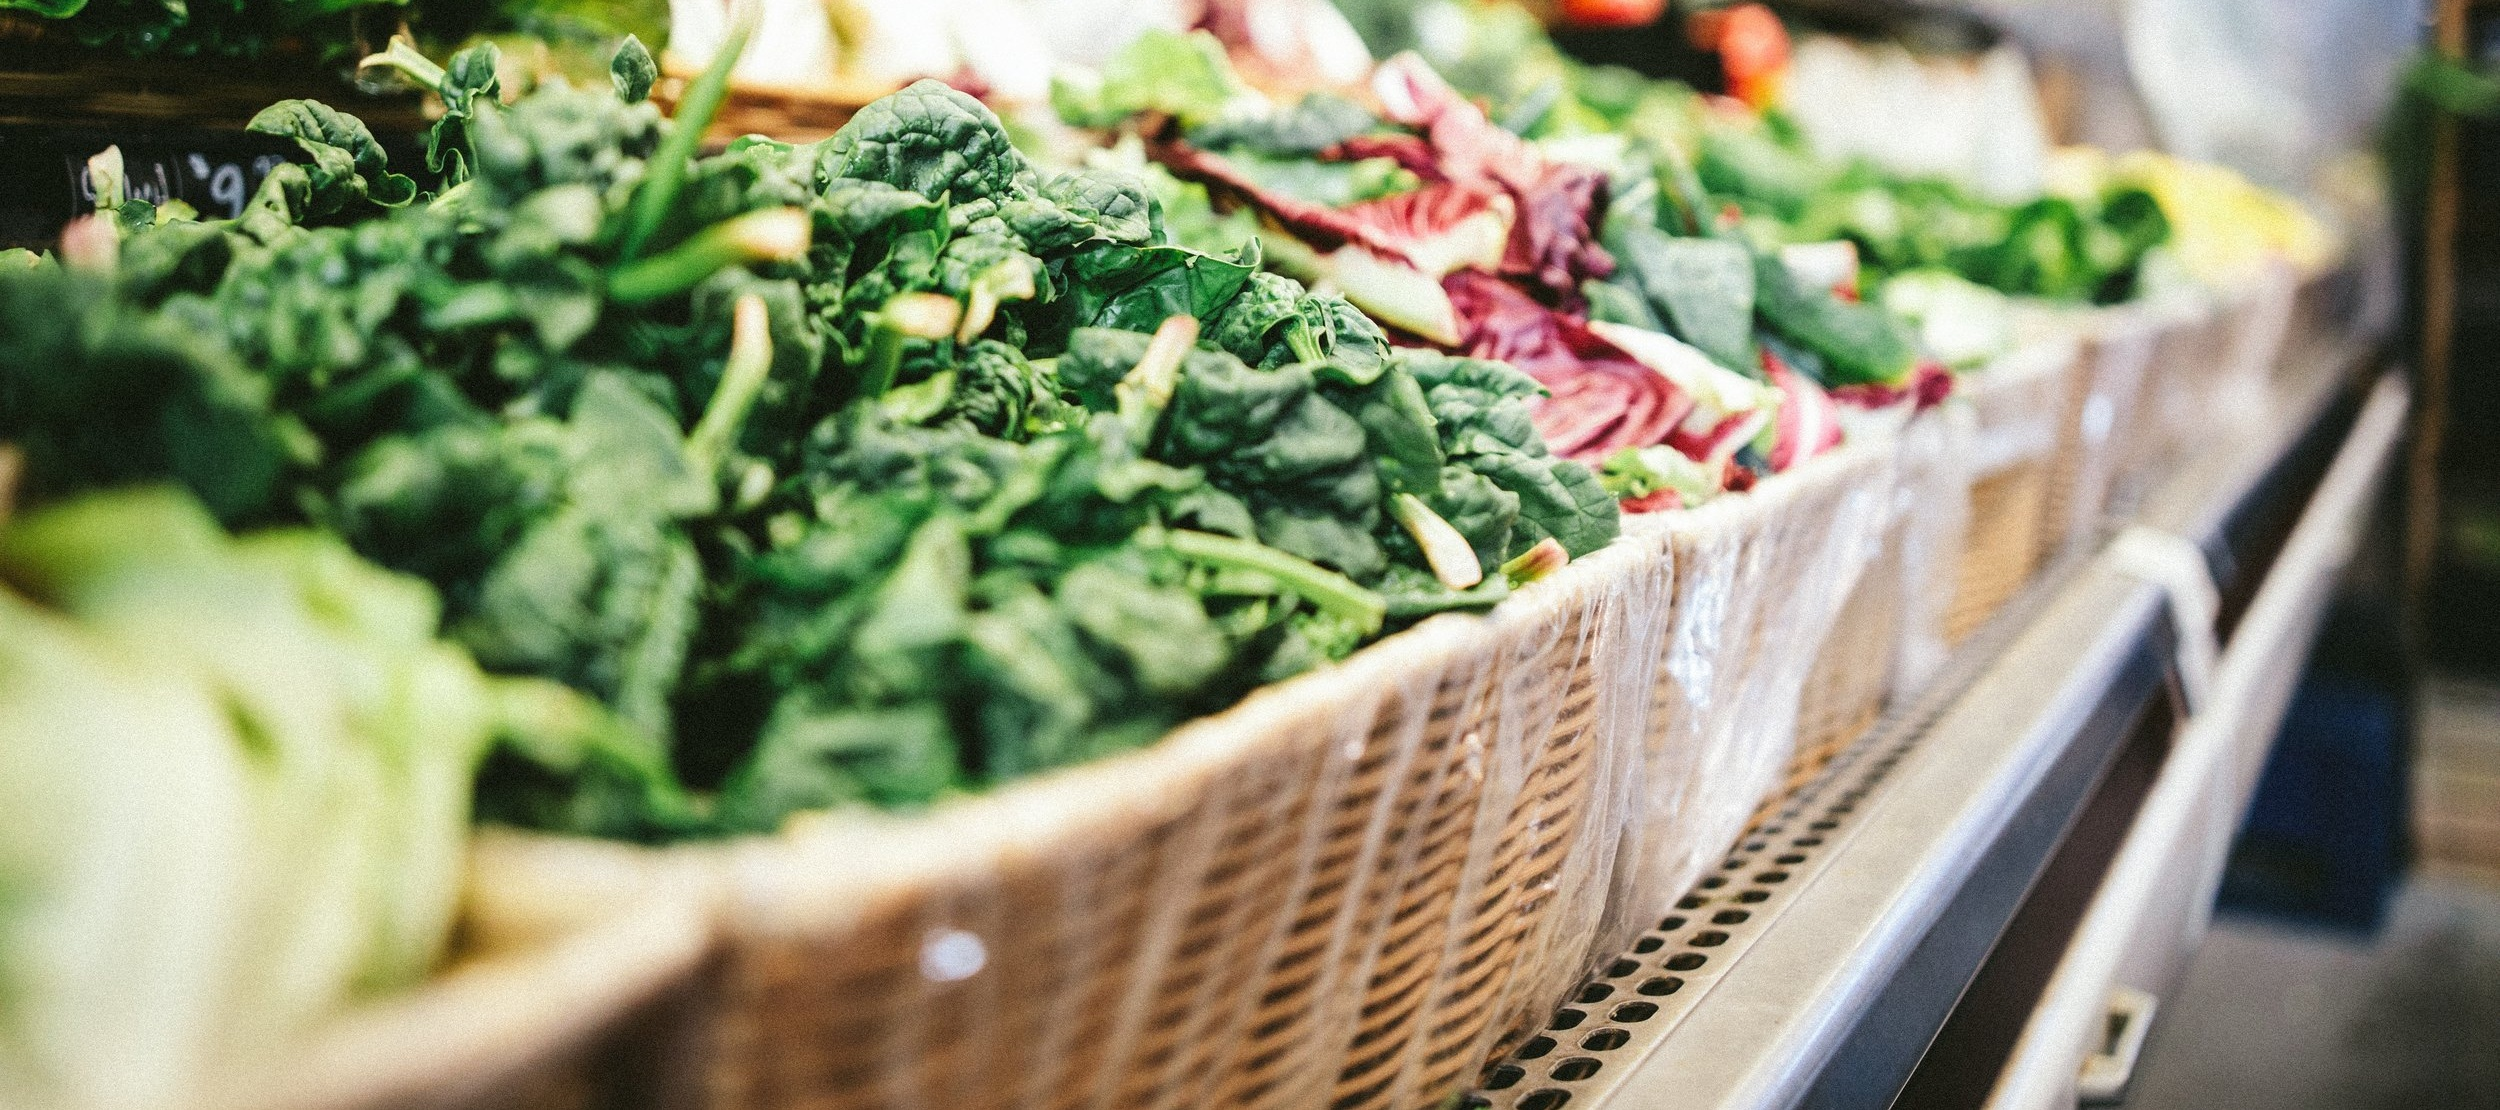 Making Nutrient-Rich Produce Choices